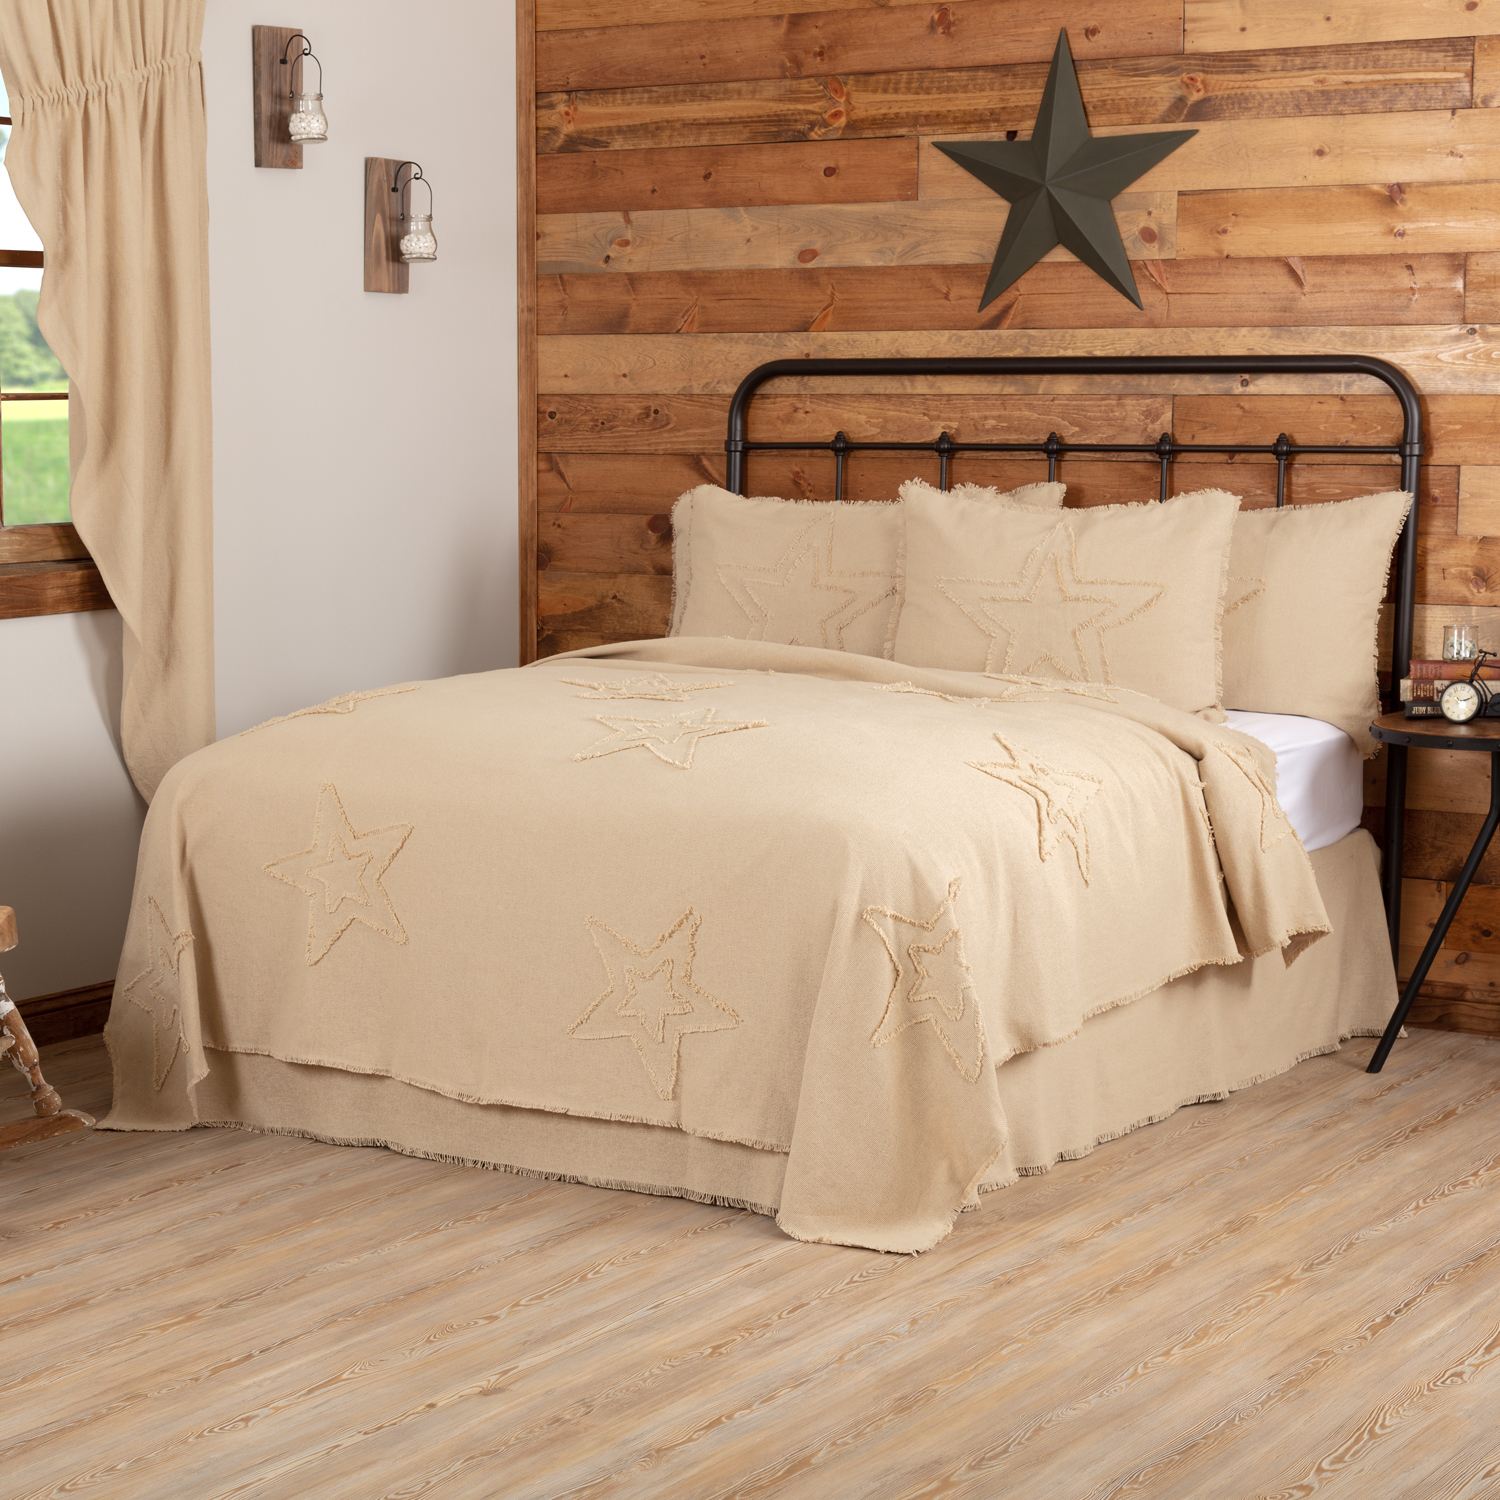 Burlap Vintage Star Twin Coverlet 90x68